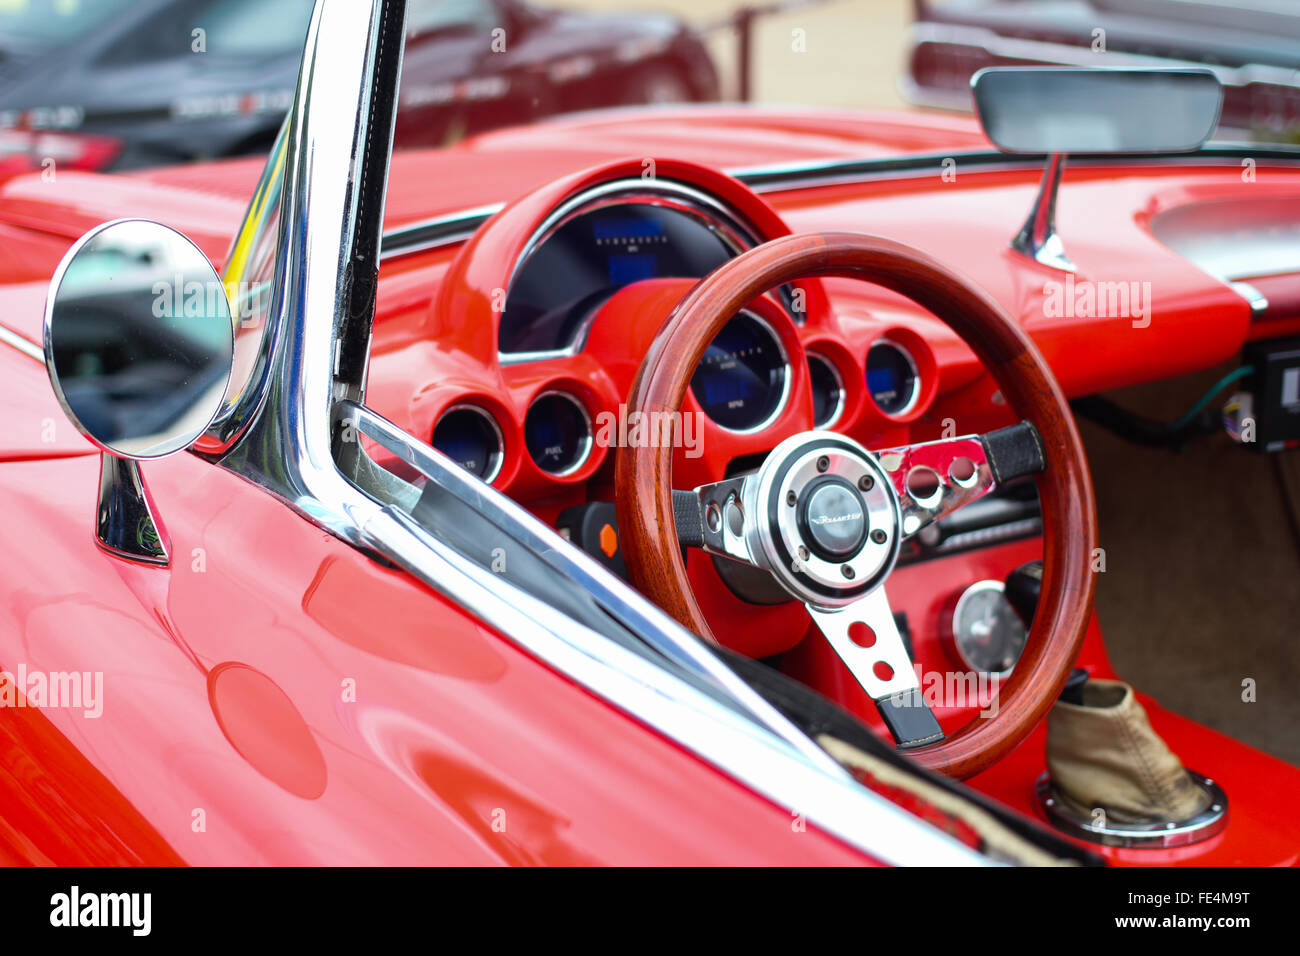 An early 60's convertible red Chevrolet Corvette's steering wheel and panel at a car showdown - Stock Image